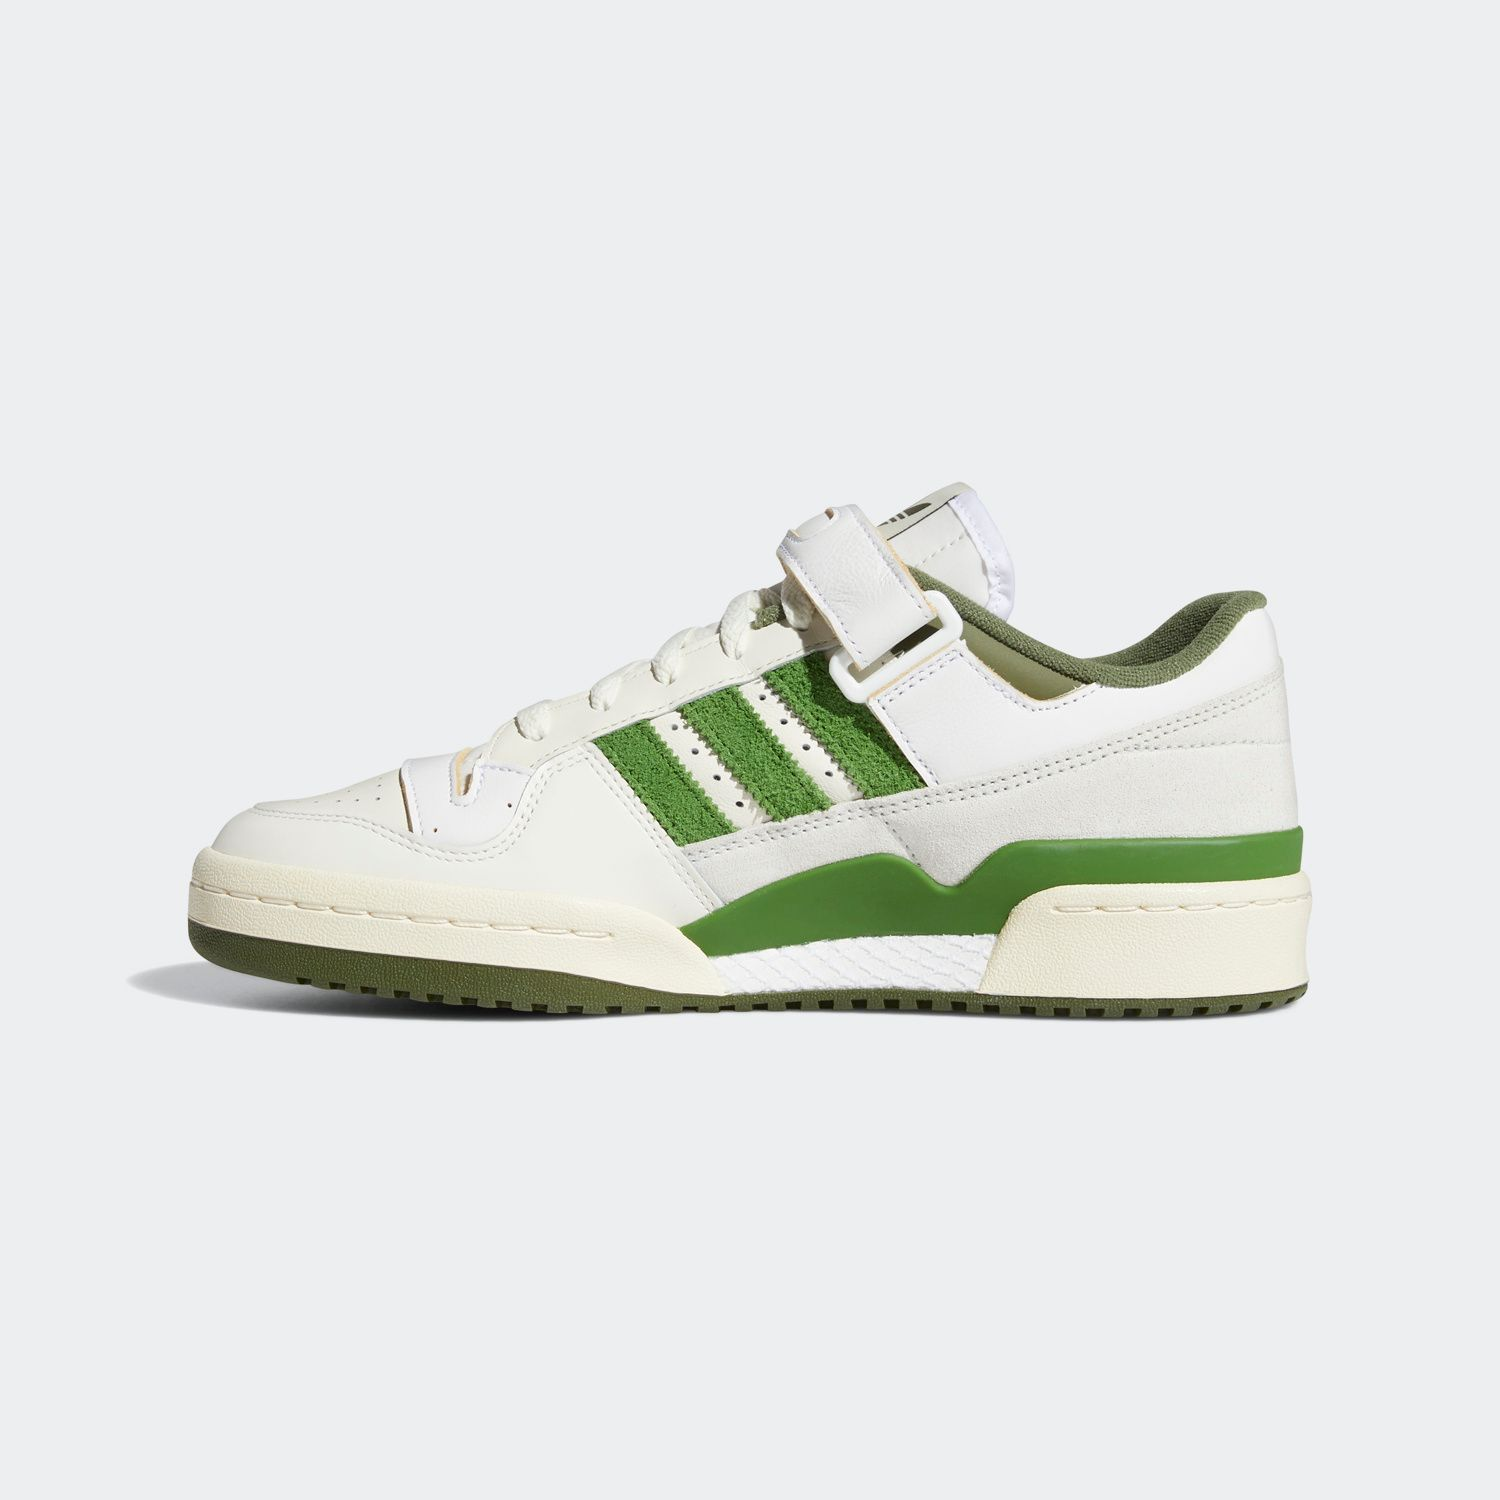 FORUM 84 Low White / Crew Green [2]